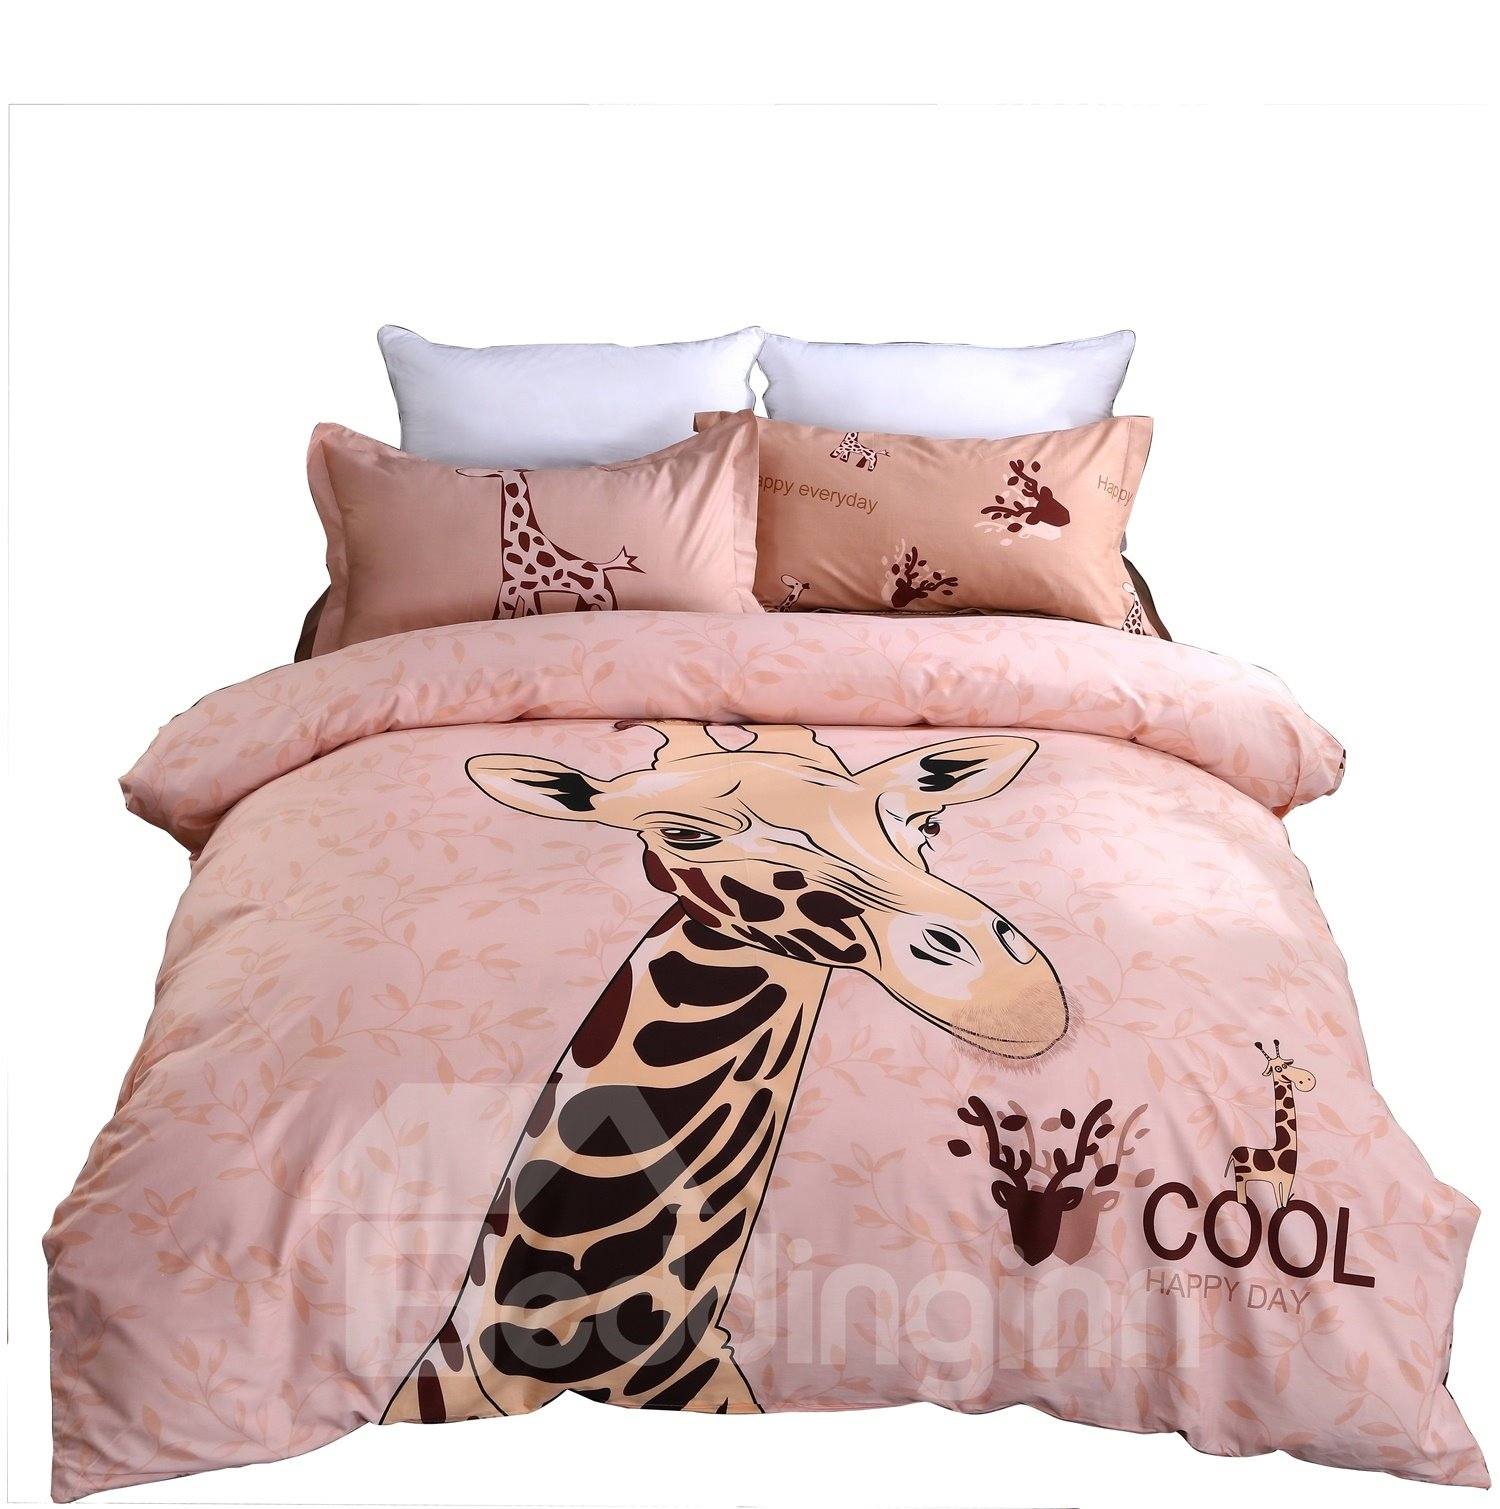 Lovely Giraffe Printing 4-Piece Duvet Cover Sets